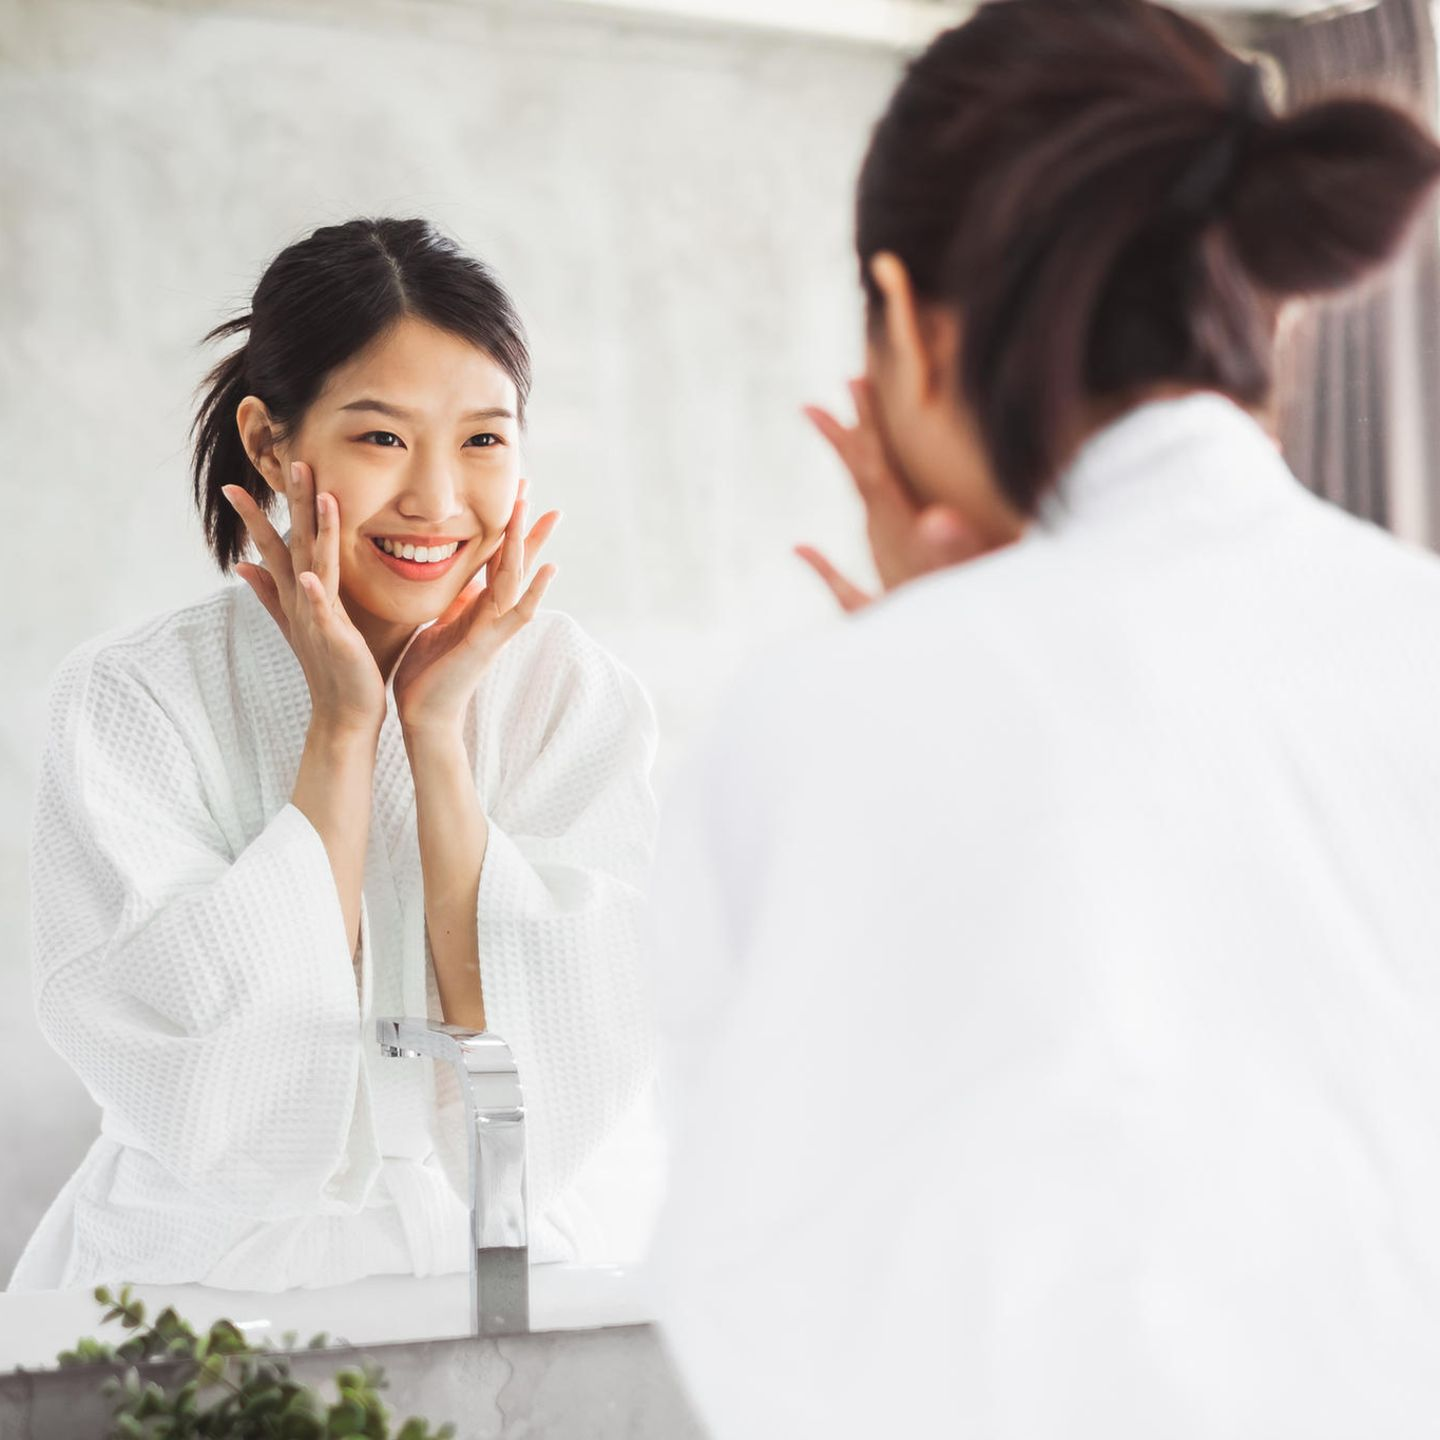 Korean skin care, koreanische Kosmetik, Beauty aus Fernost